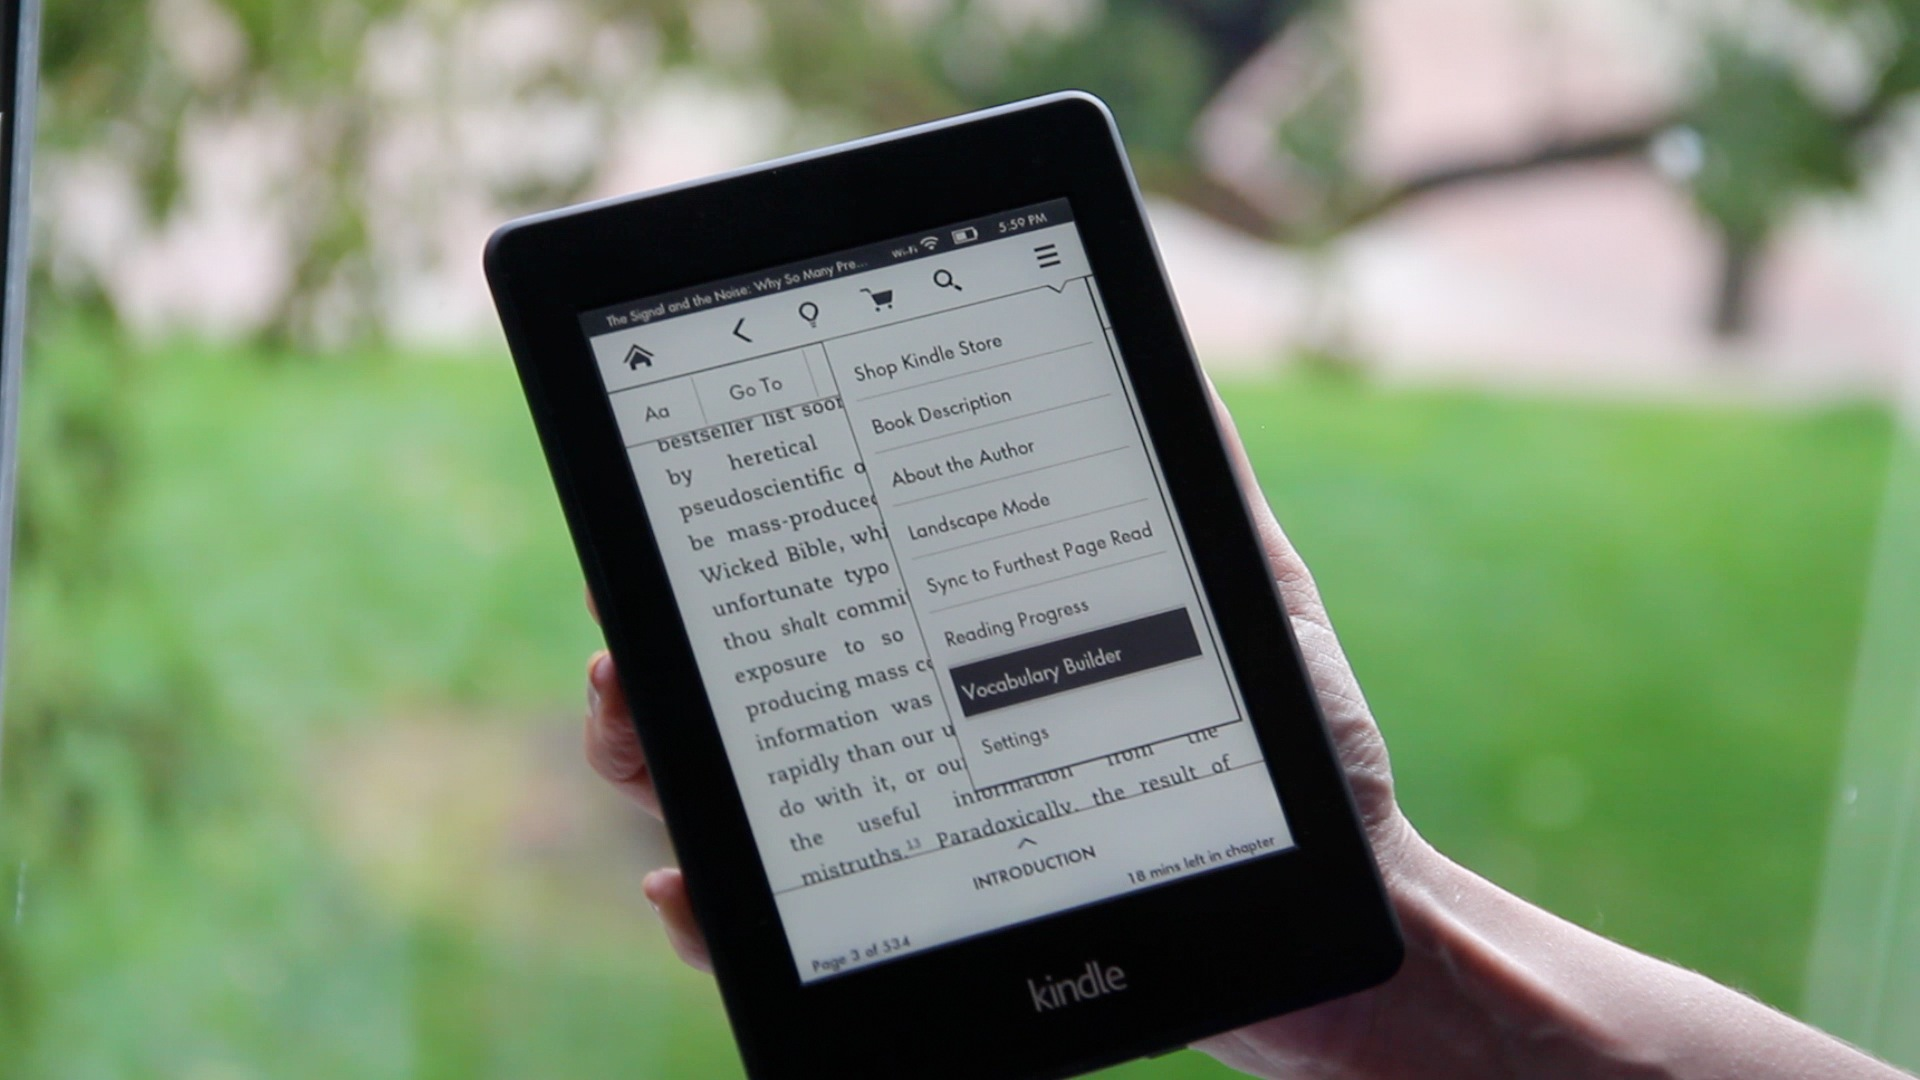 New Kindle Paperwhite Is a Snappier, More Capable E-Reader - Lauren